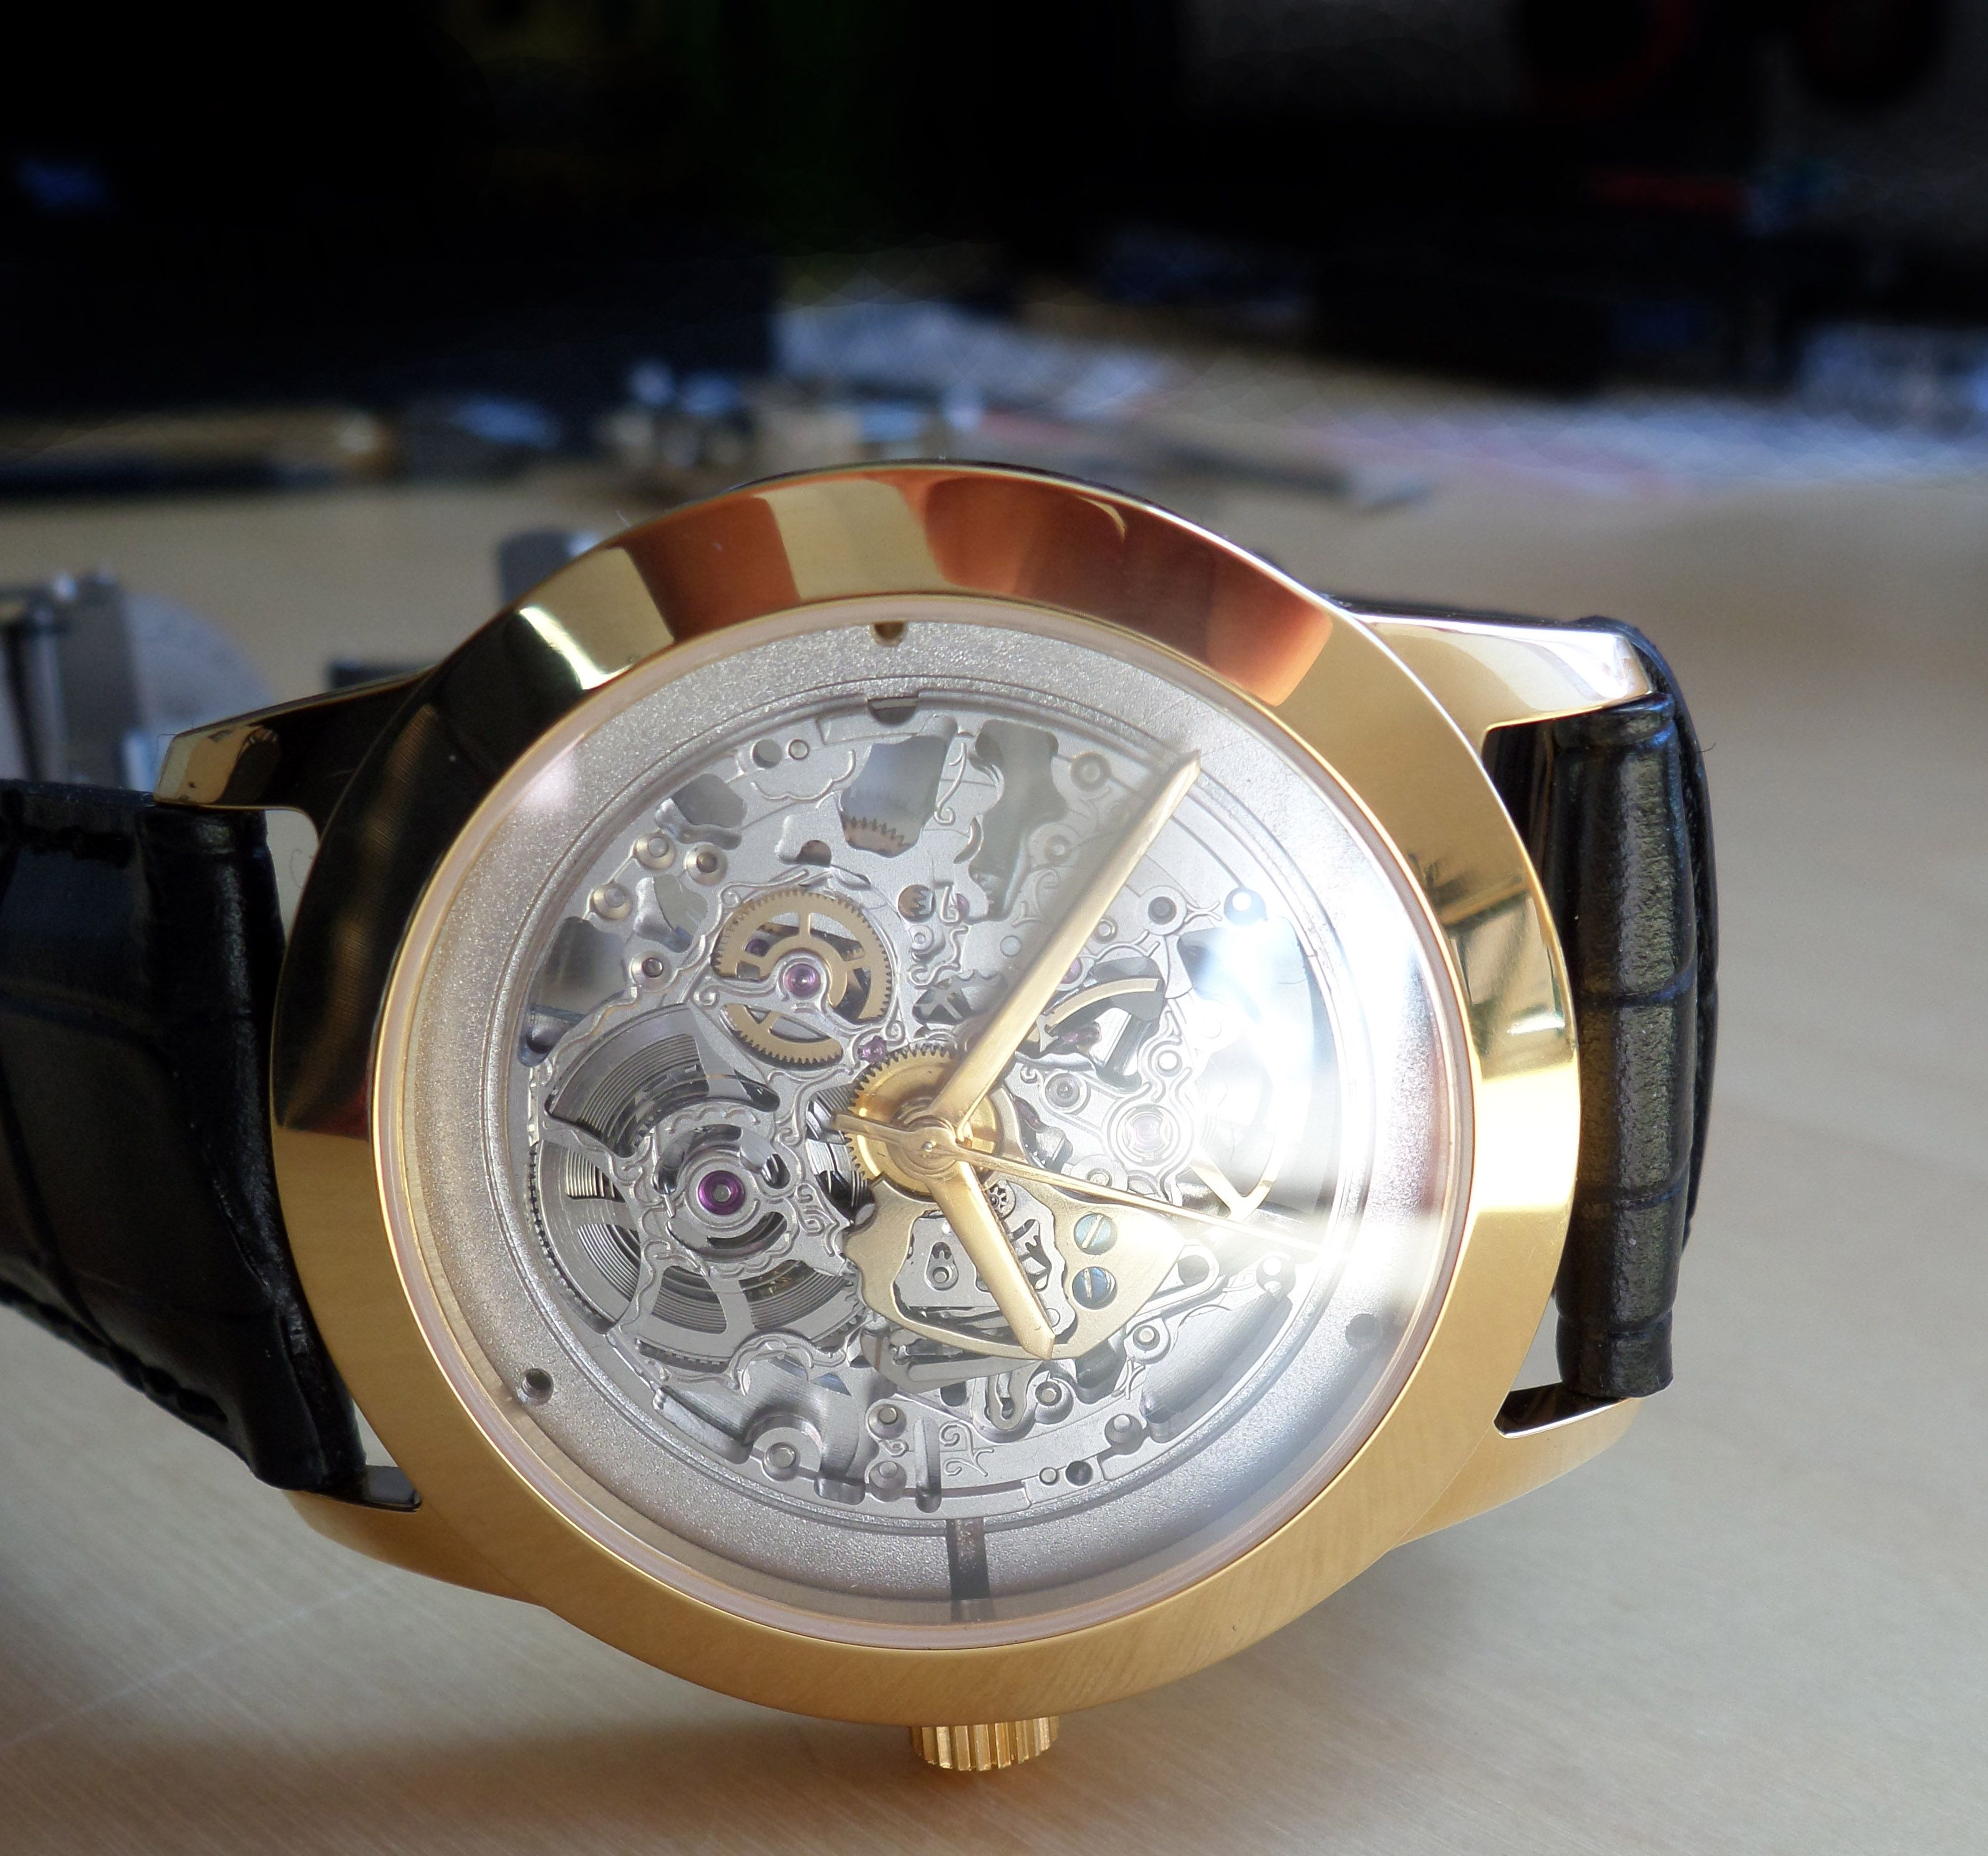 Tailor-made watch by MB Watches www.mb-watches.com